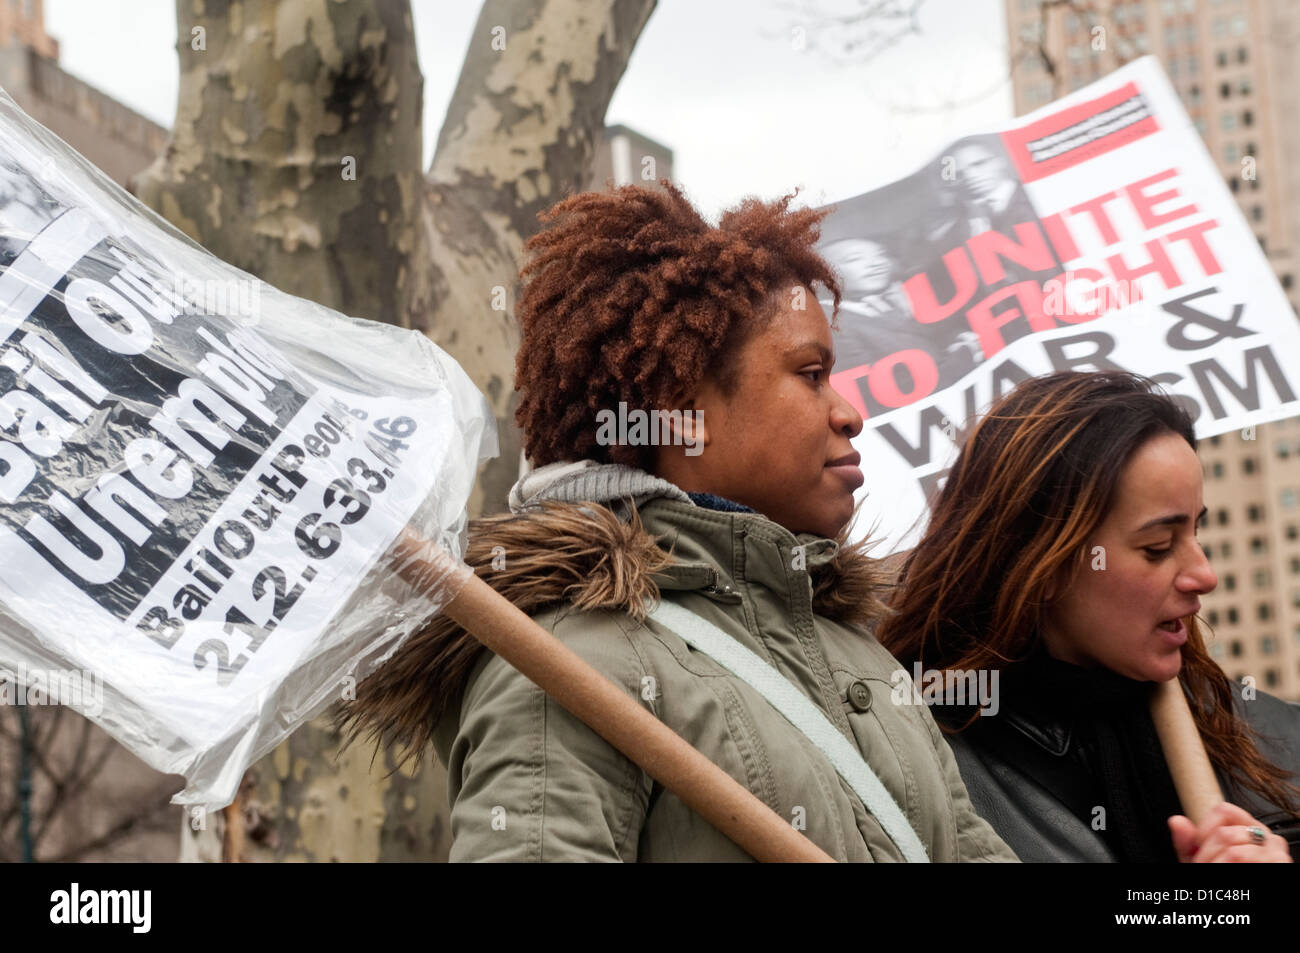 Anti Corporate Bail Out protesters march down Broadway to Battery Park ©Stacy Walsh Rosenstock/Alamy - Stock Image